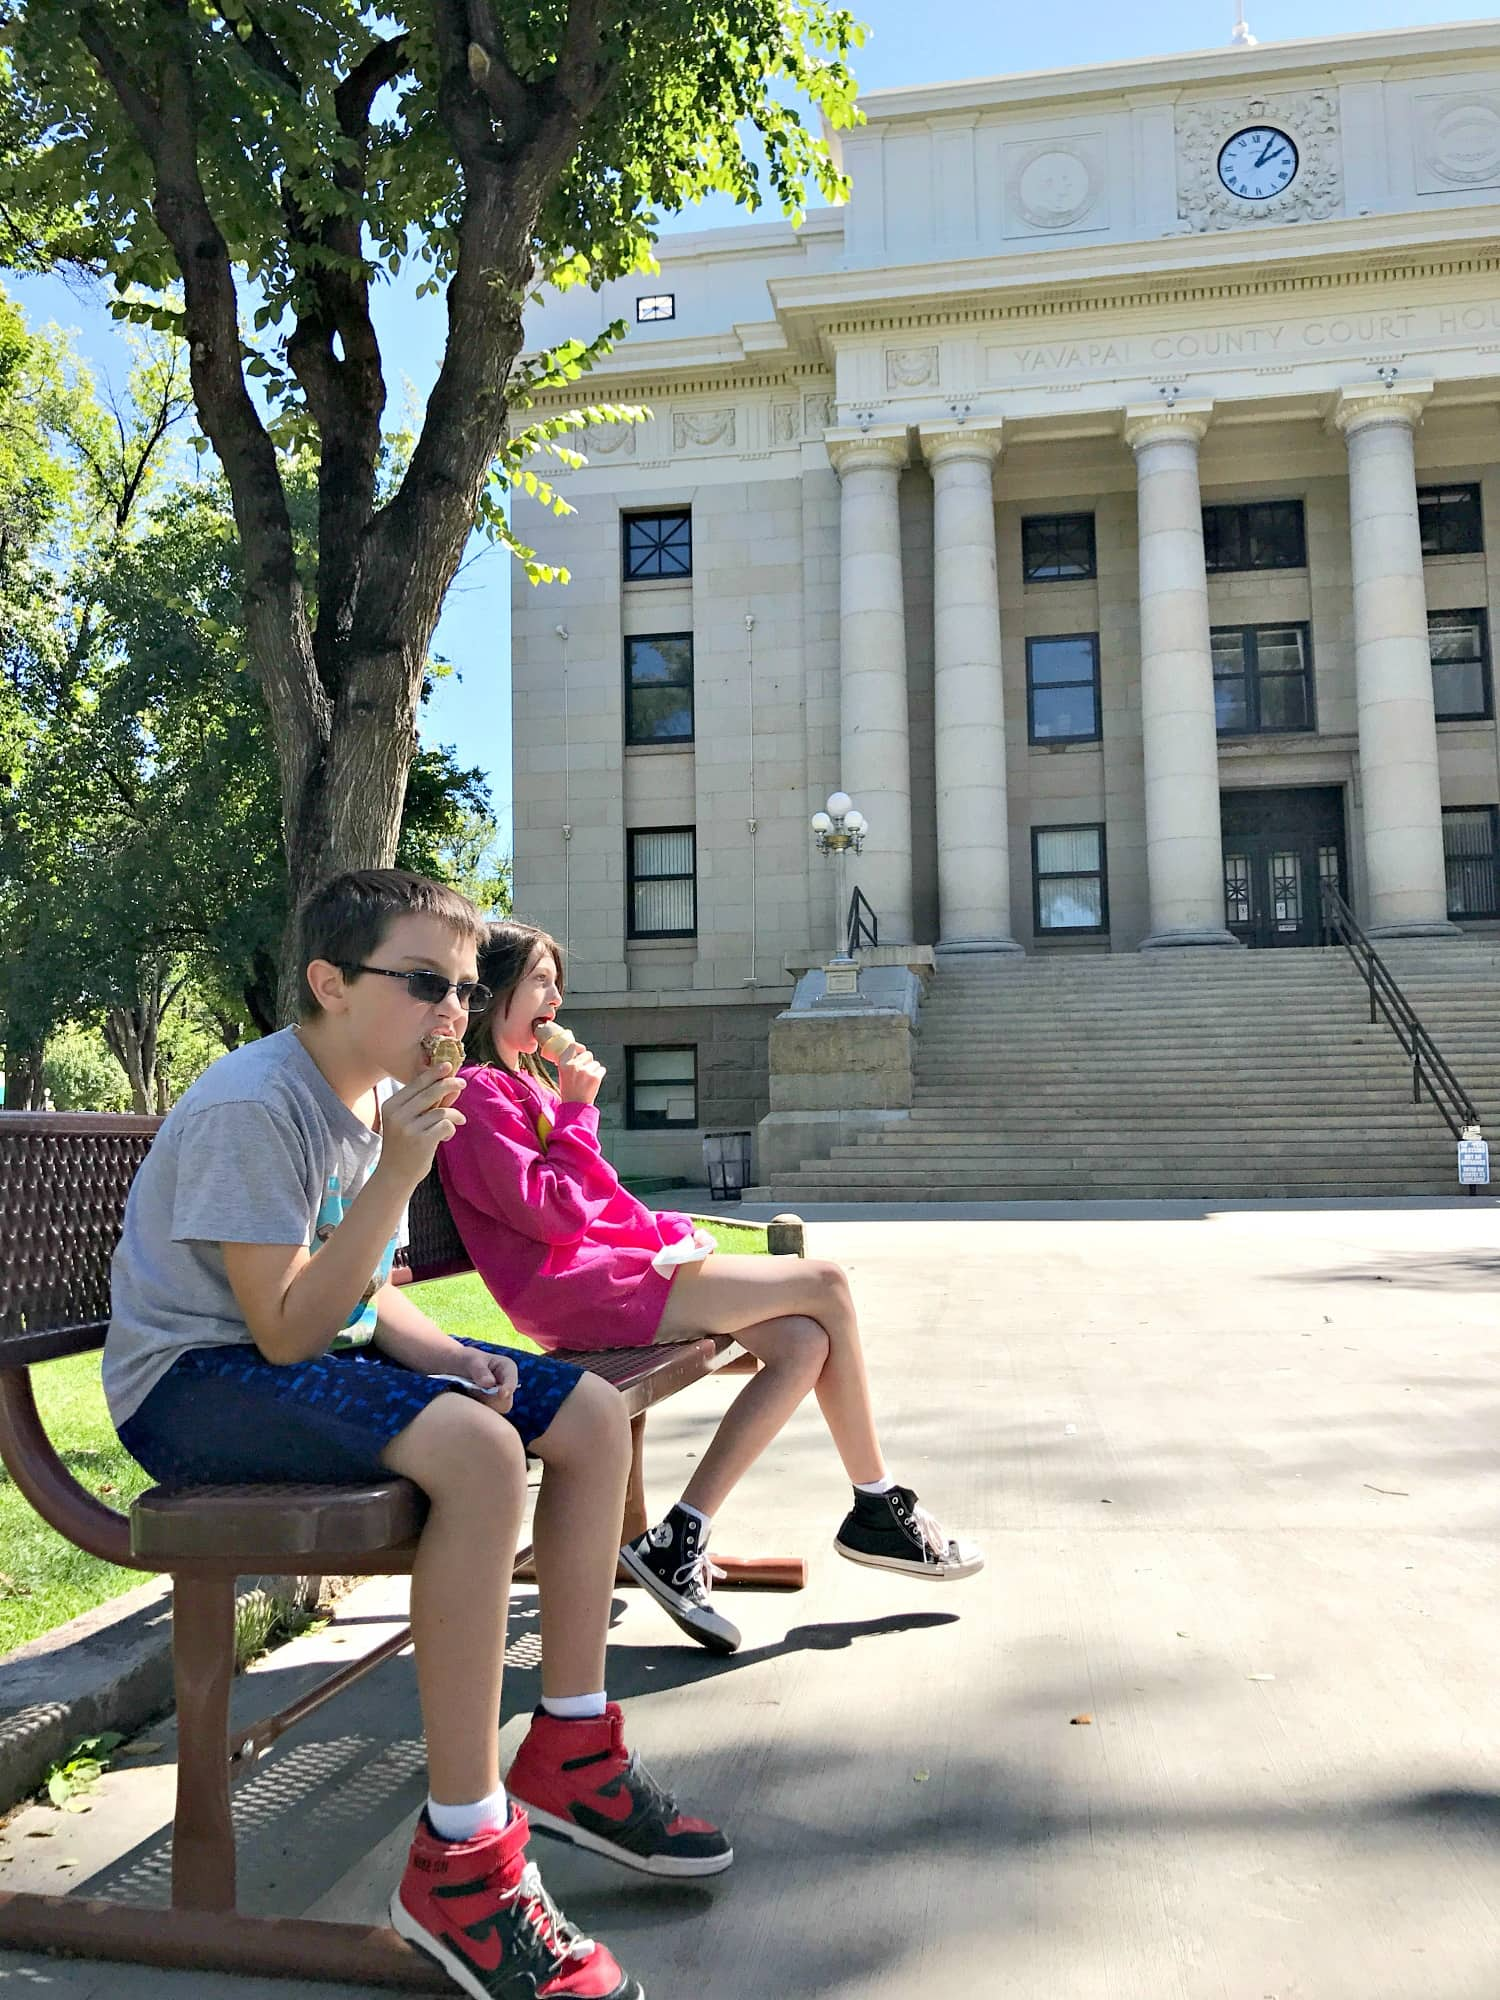 Courthouse Square is the perfect place to play sit on a bench and watch the world go by in Prescott with kids